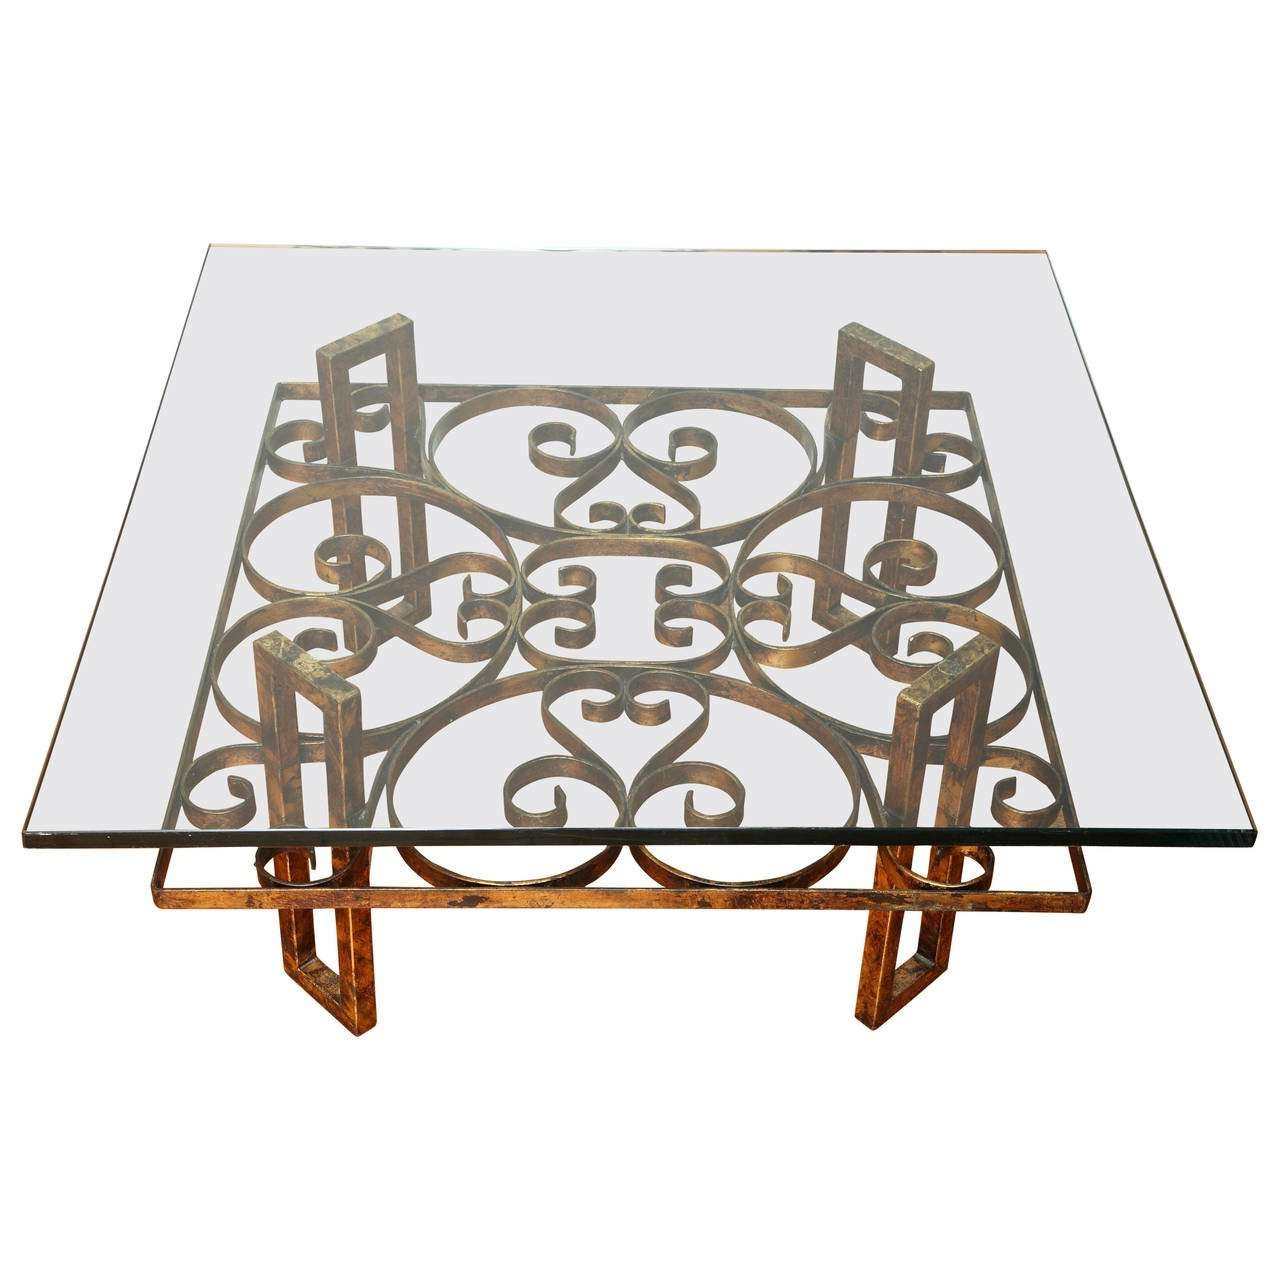 Gilded Wrought Iron Square Coffee Table With Scroll Motif Glass For Most Up To Date Wrought Iron Coffee Tables (Gallery 3 of 20)